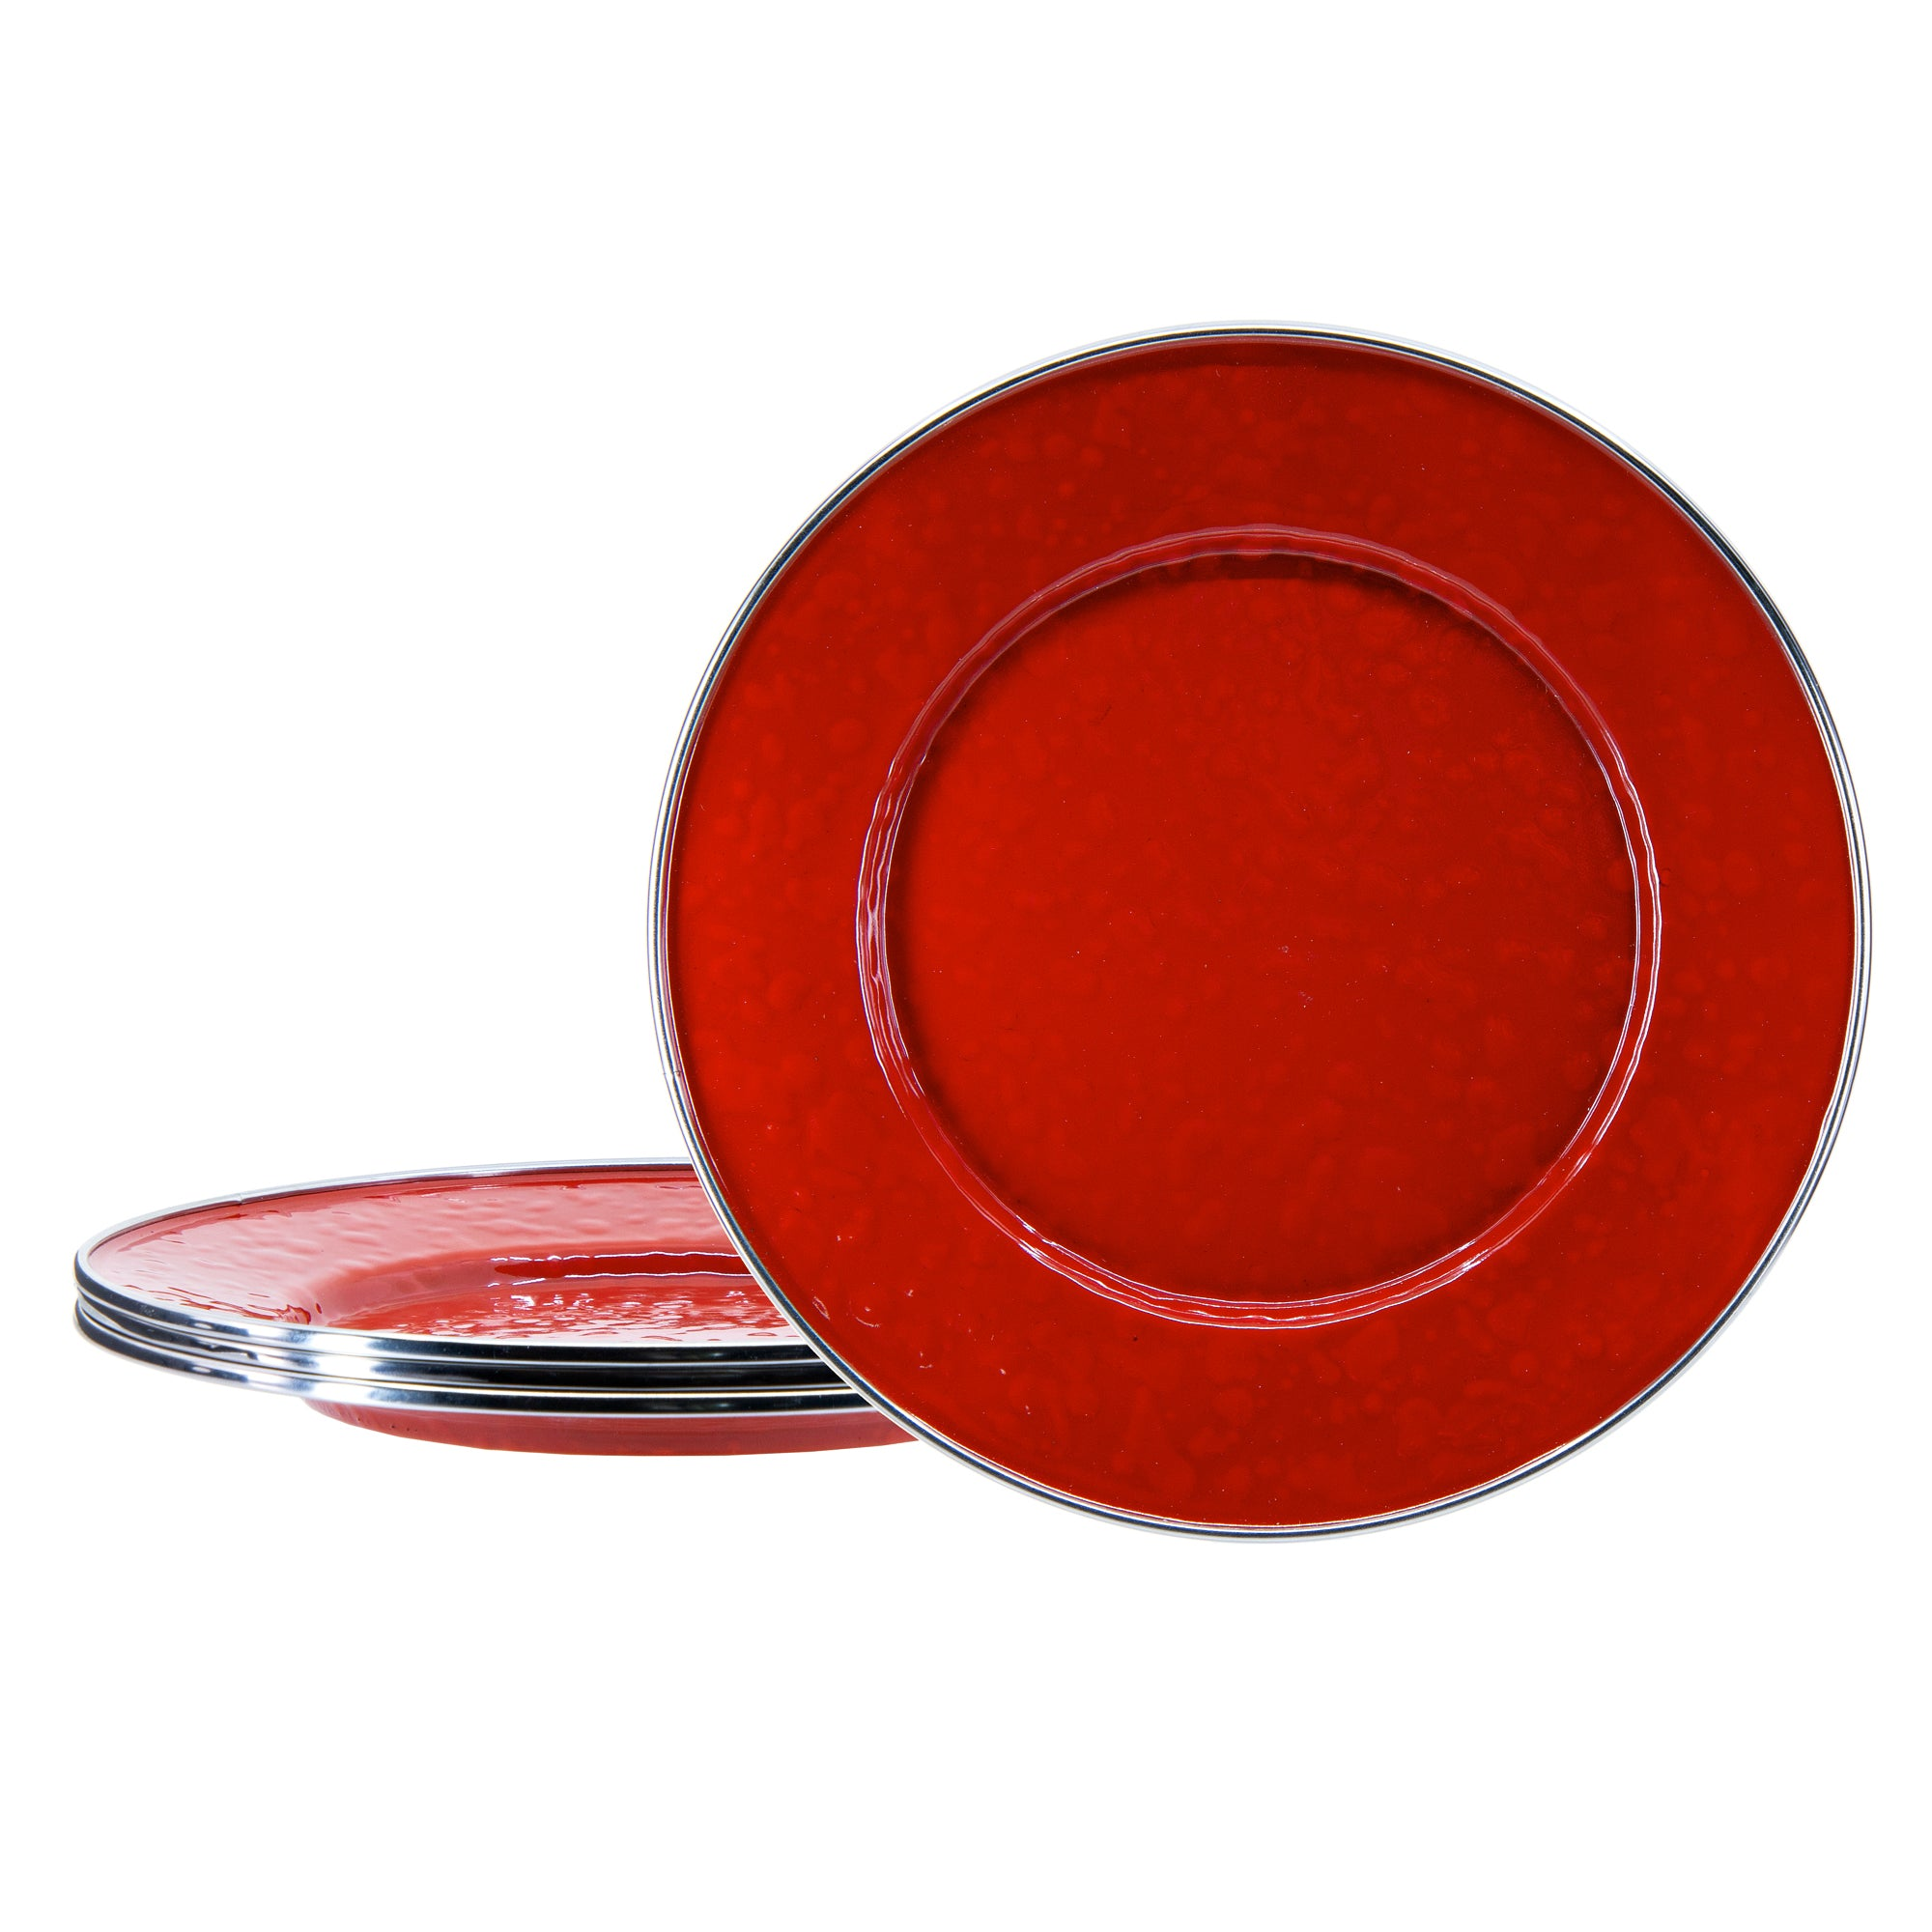 RR11S4 - Set of 4 Solid Red Sandwich Plates Image 1